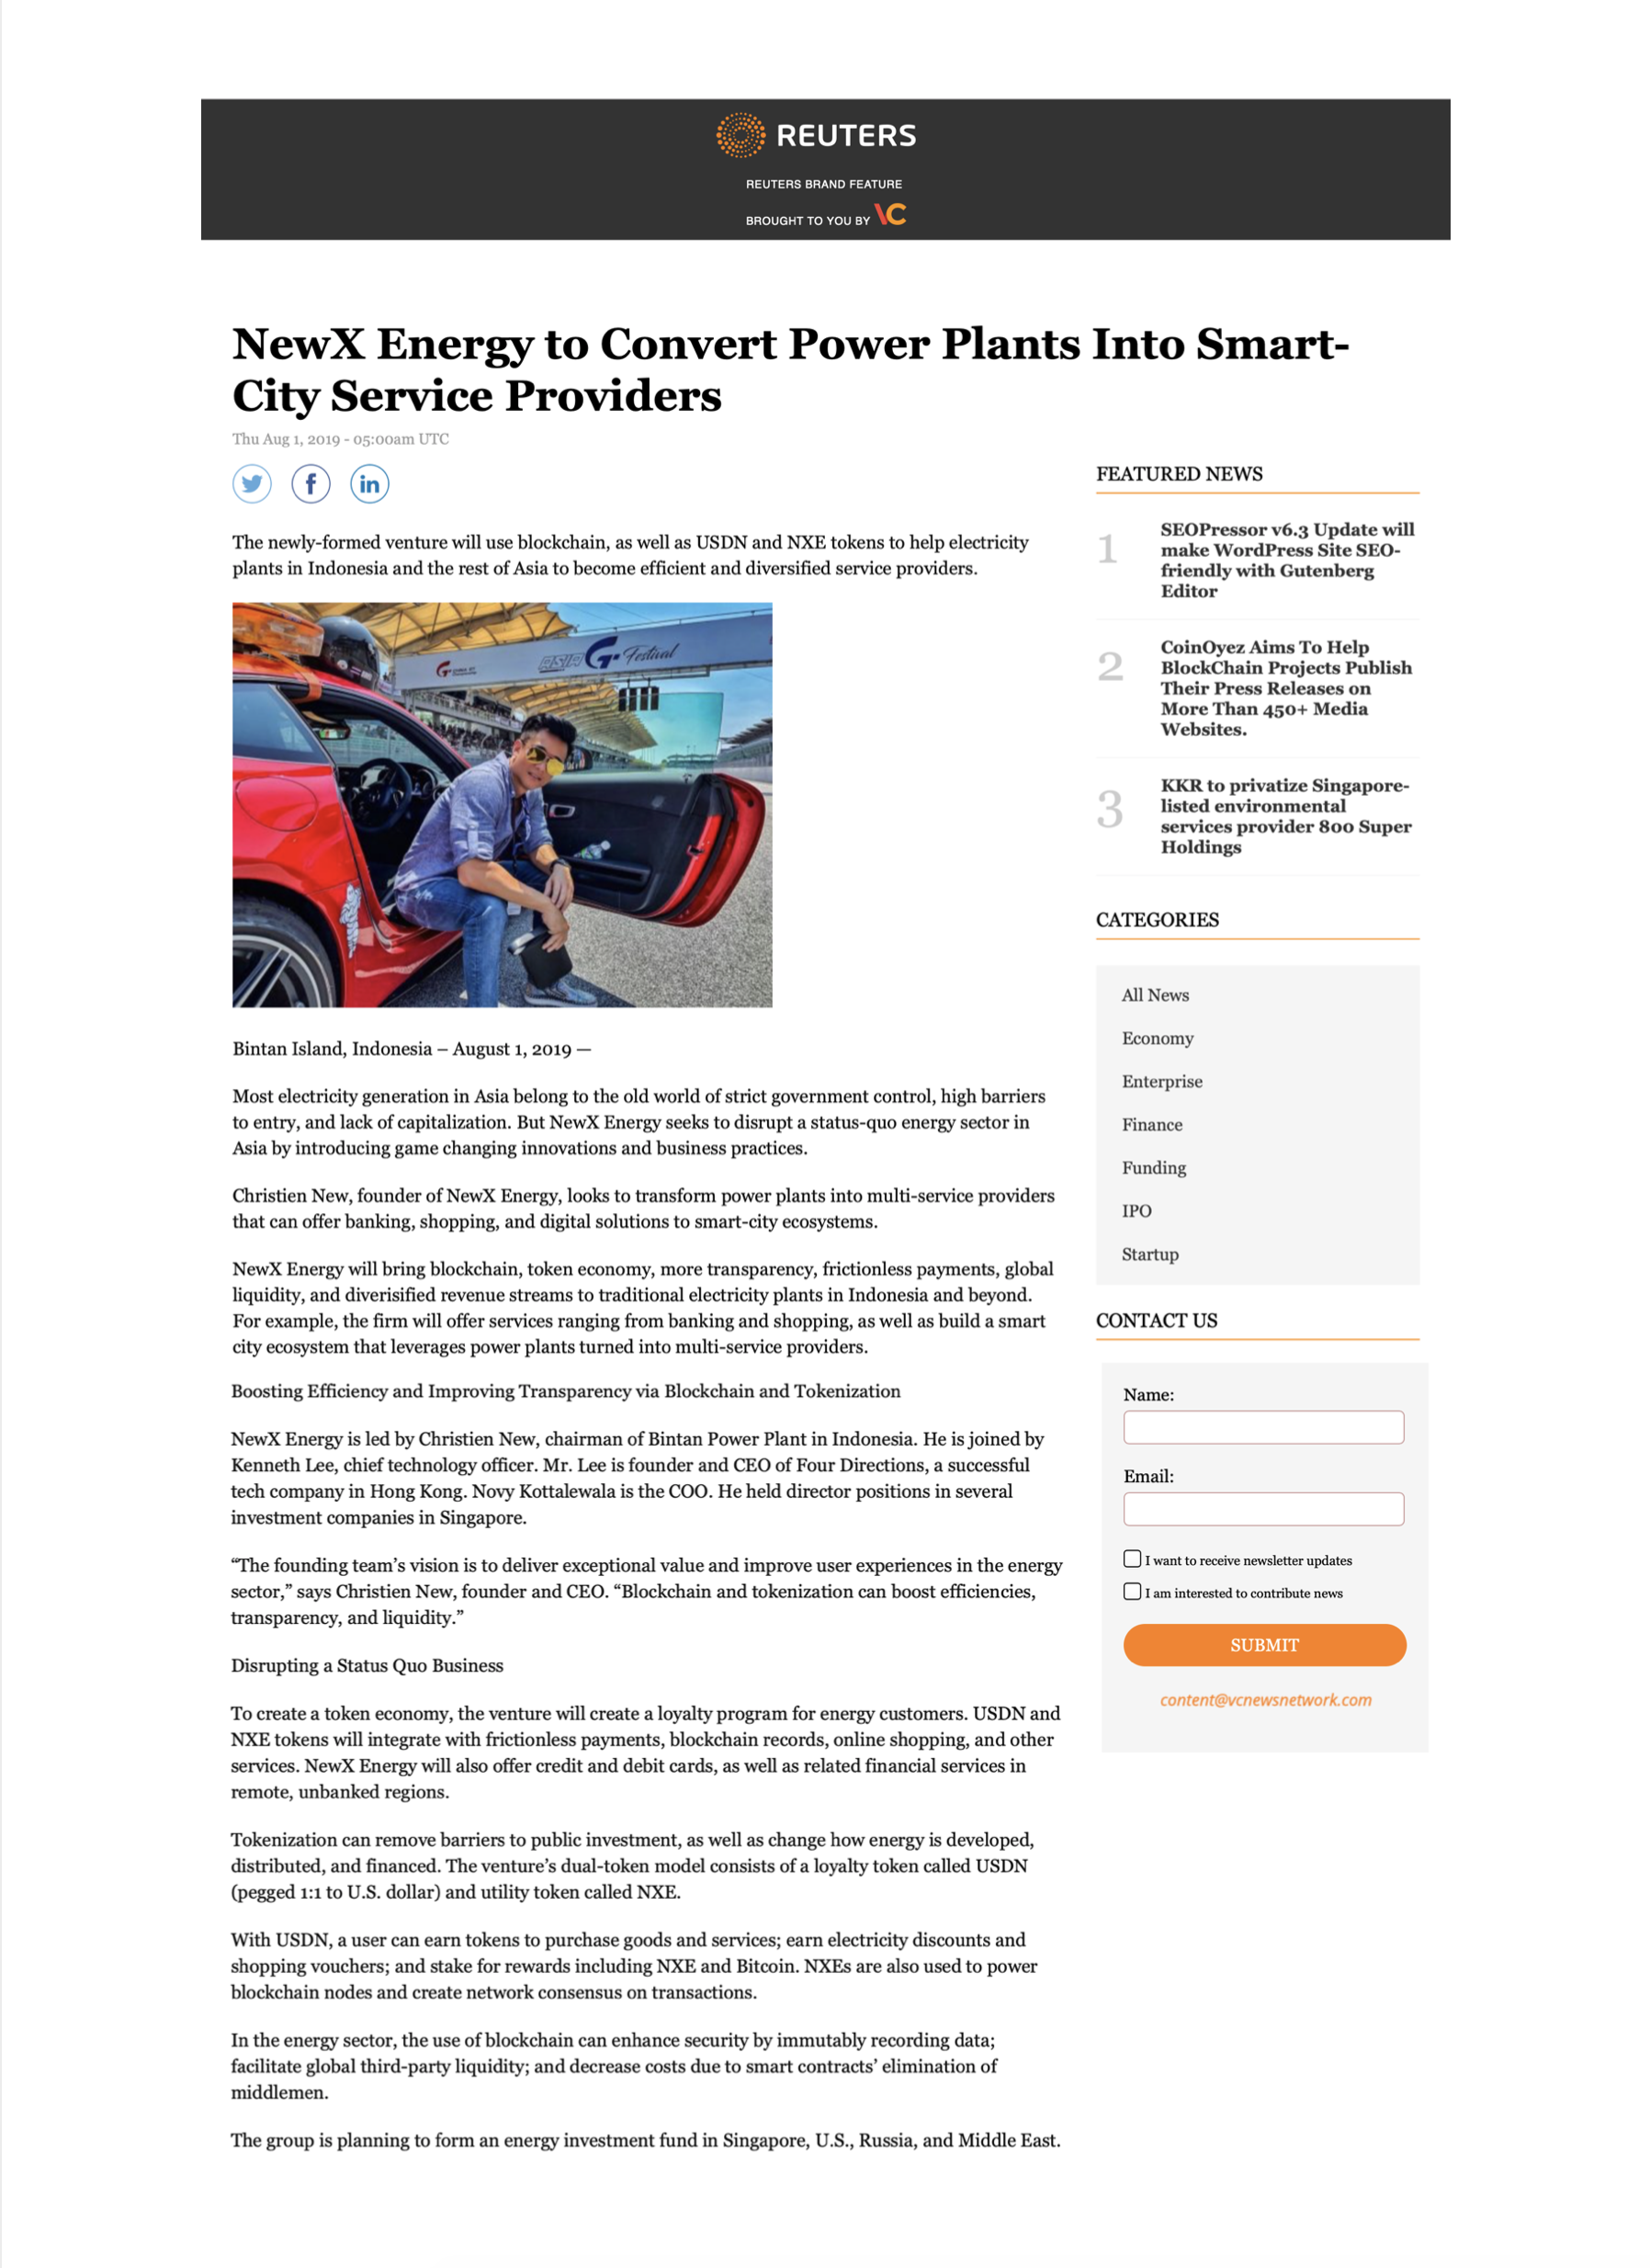 Reuters – NewX Energy to convert Power Plants into Smart City Service Providers